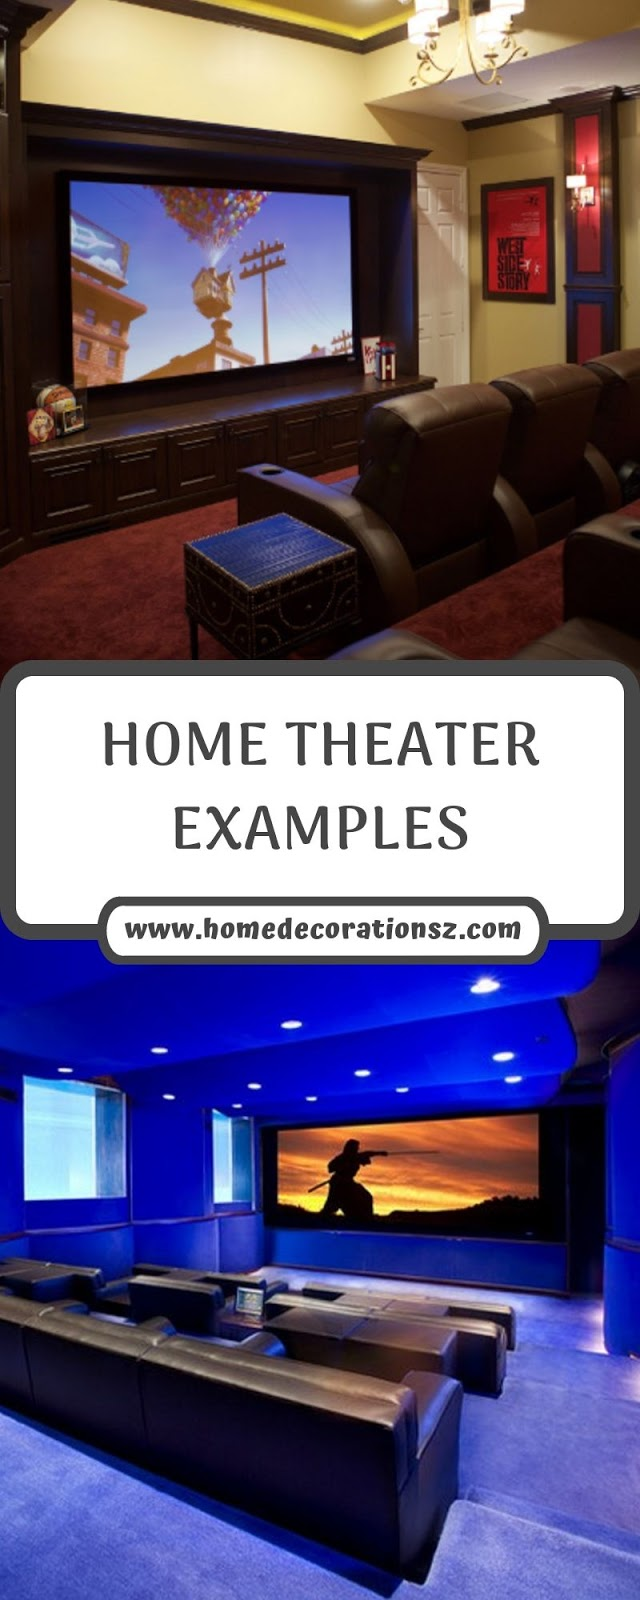 HOME THEATER EXAMPLES